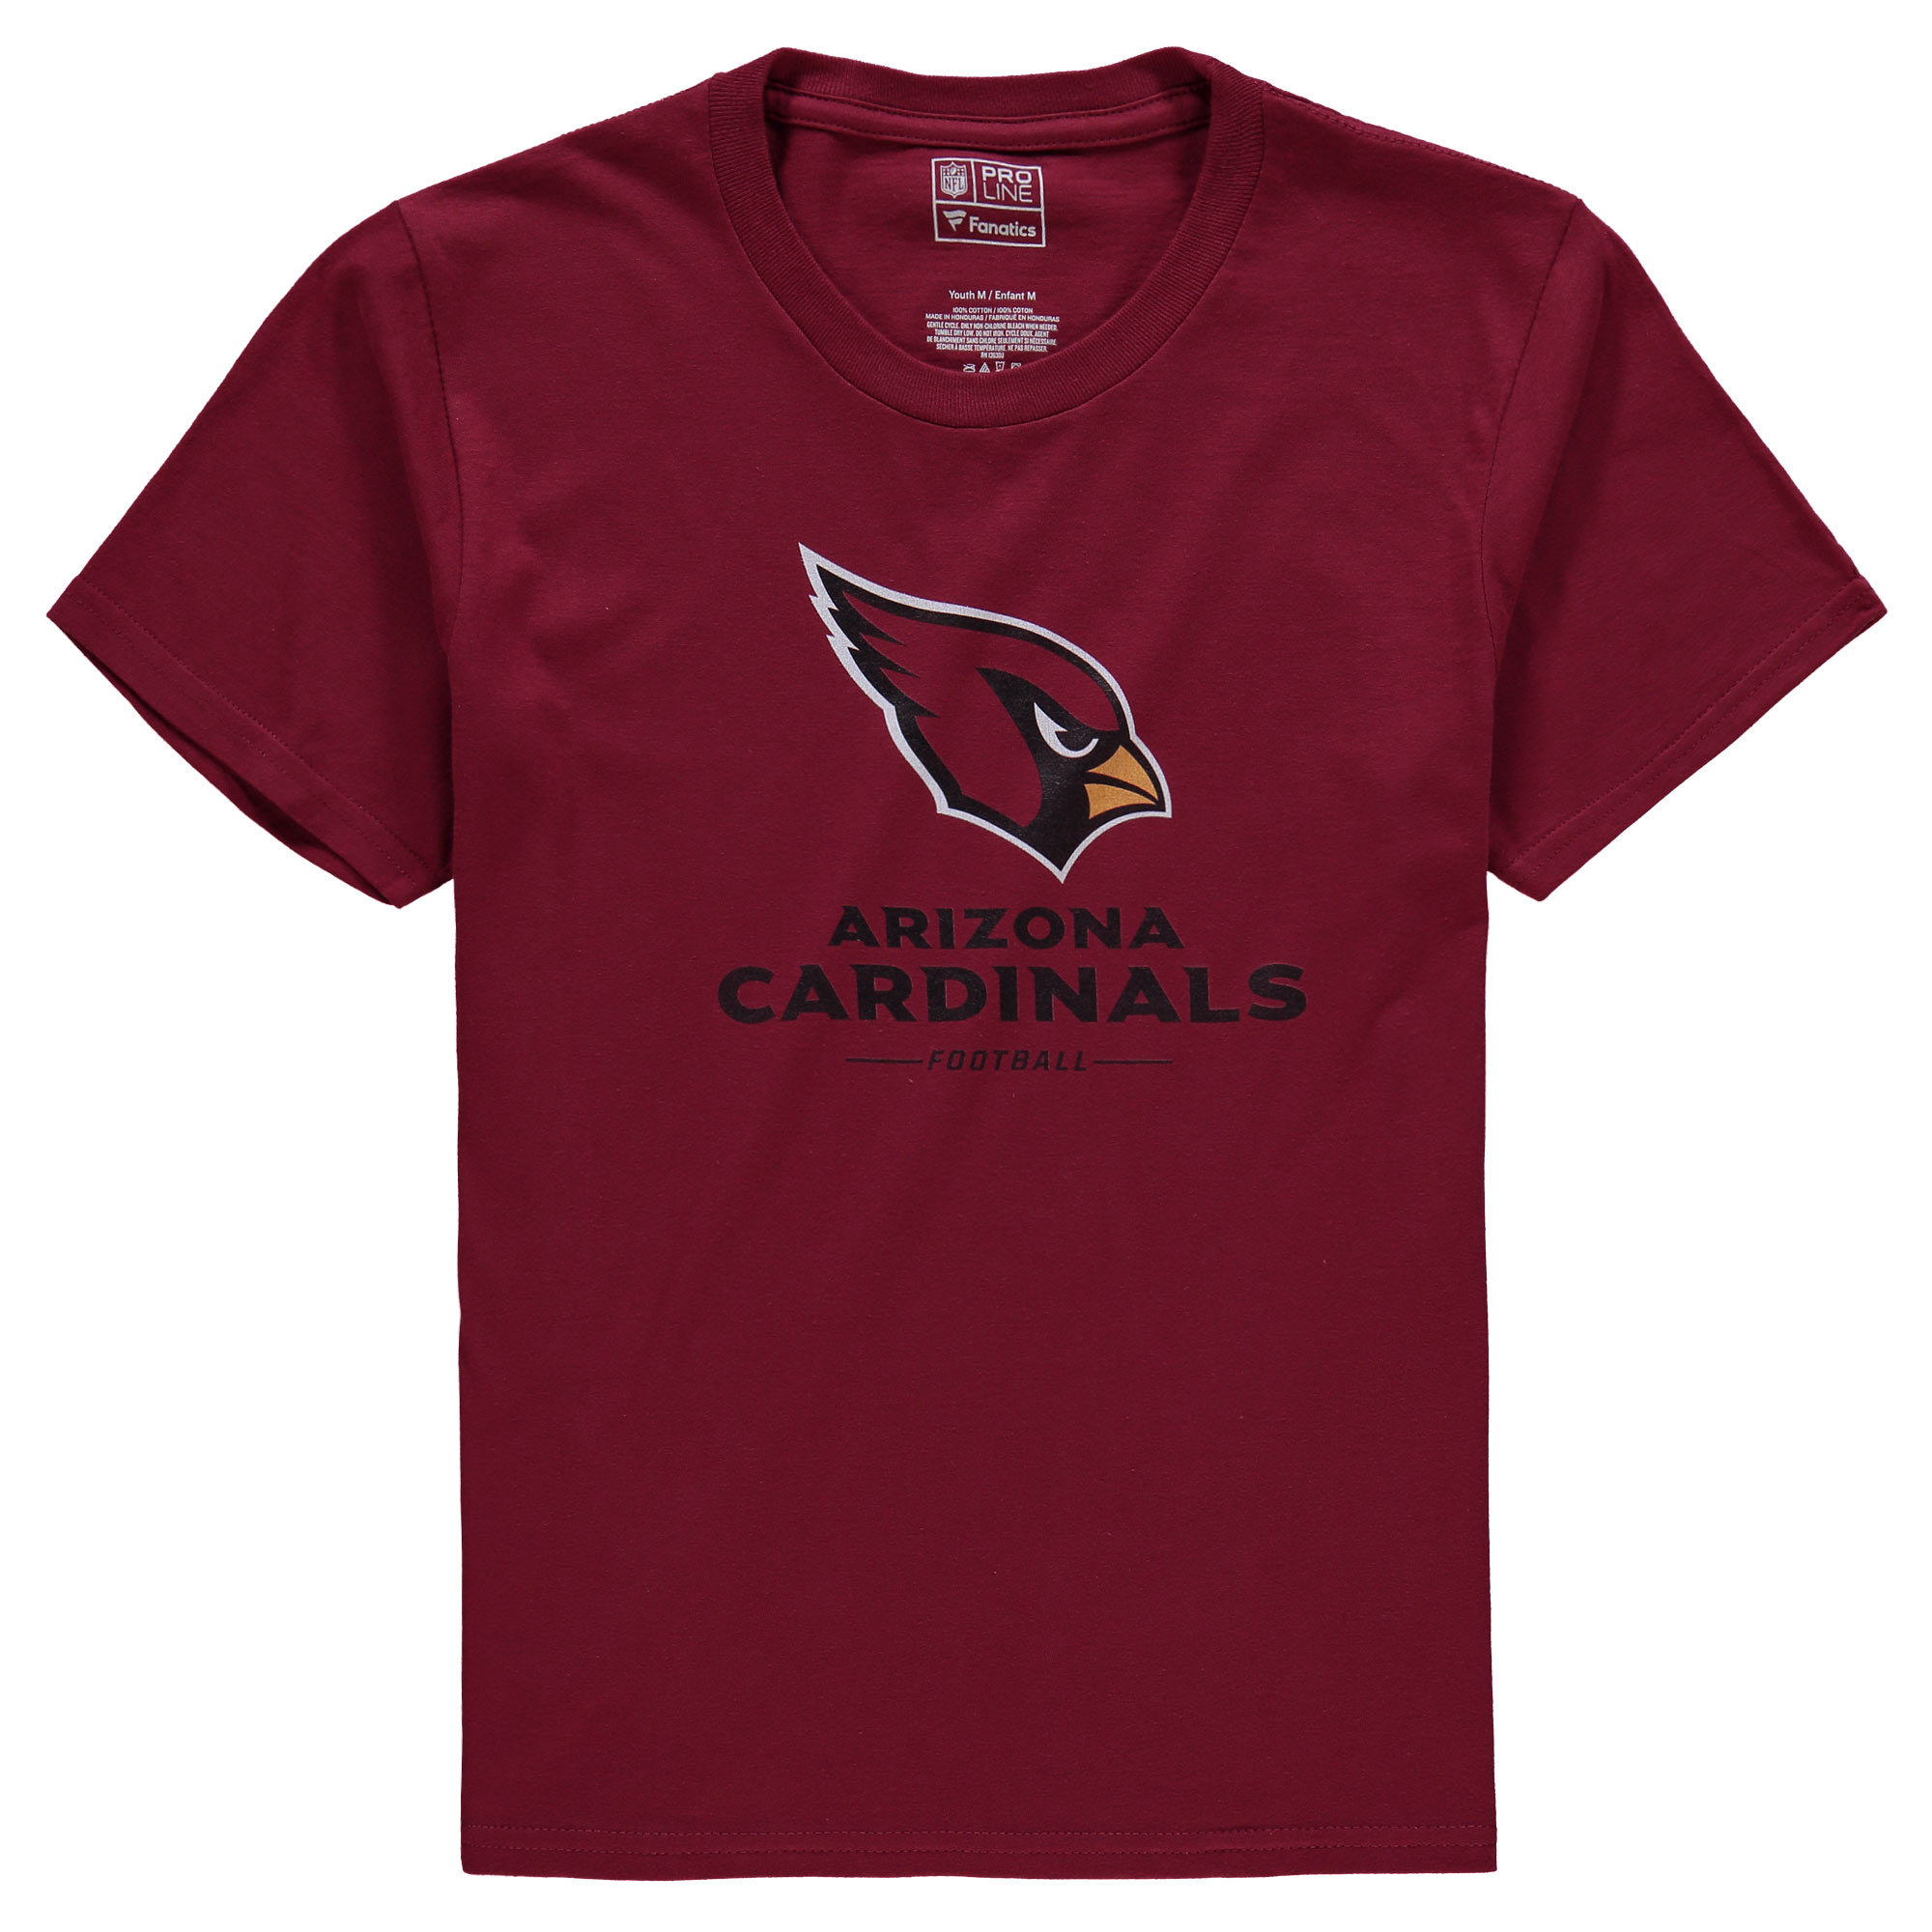 Arizona Cardinals NFL Pro Line Youth Team Lockup T-Shirt - Cardinal